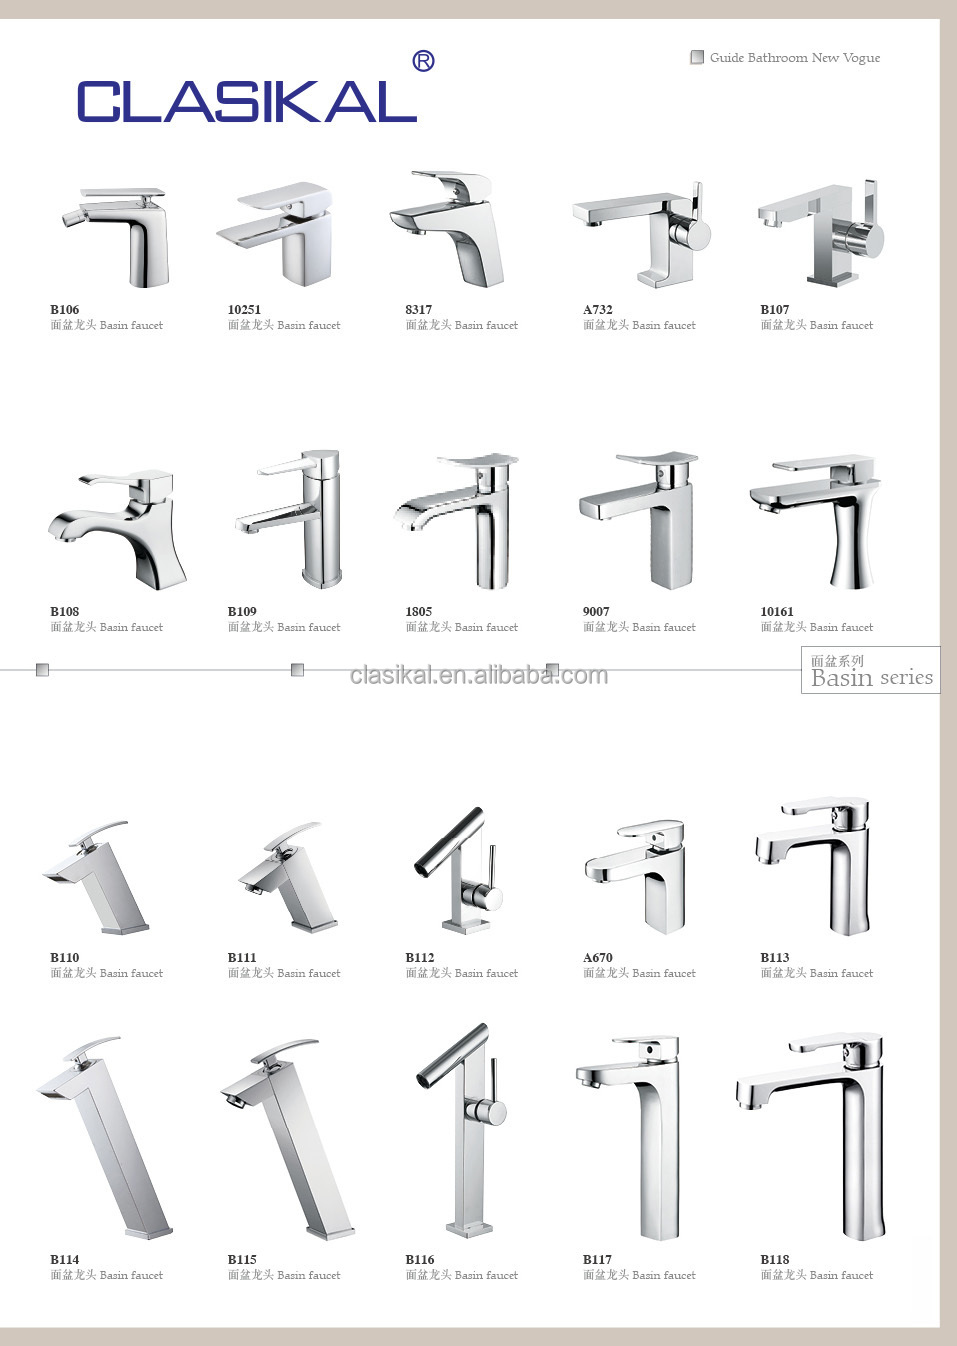 Factory Dirrect Upc 61 9 Nsf Kitchen Faucet Buy Upc 61 9 Nsf Kitchen Faucet Flexible Upc 61 9